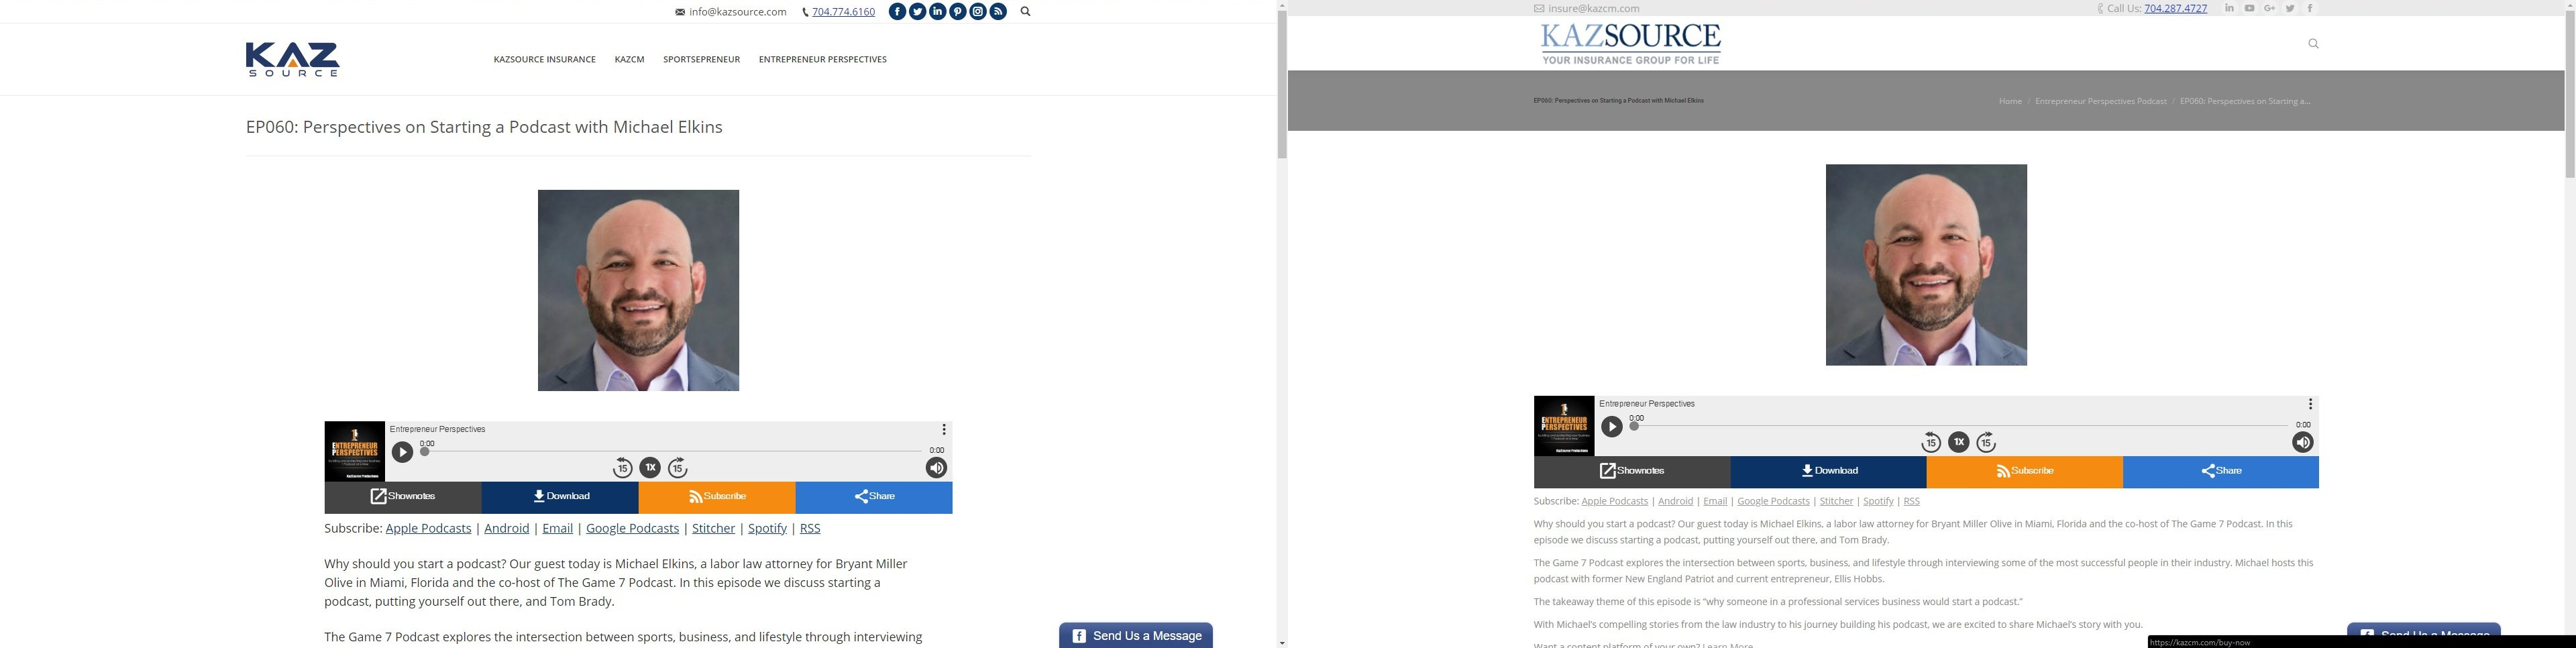 KazSource website header. The image on the left is correct, the image on the right is our site with an error.